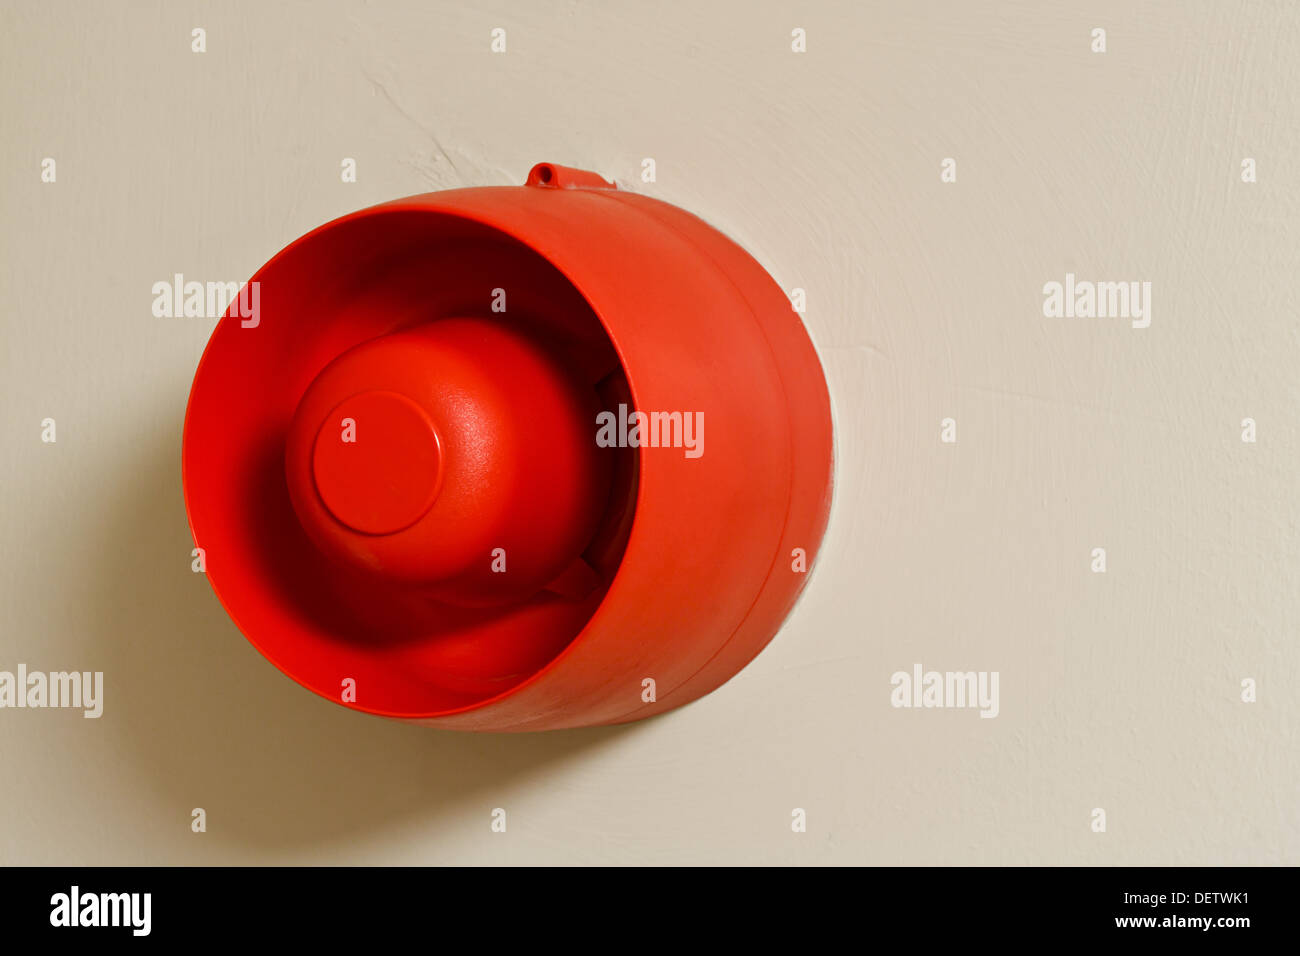 red wall mounted fire siren warning alarm used to alert people to danger in buildings - Stock Image